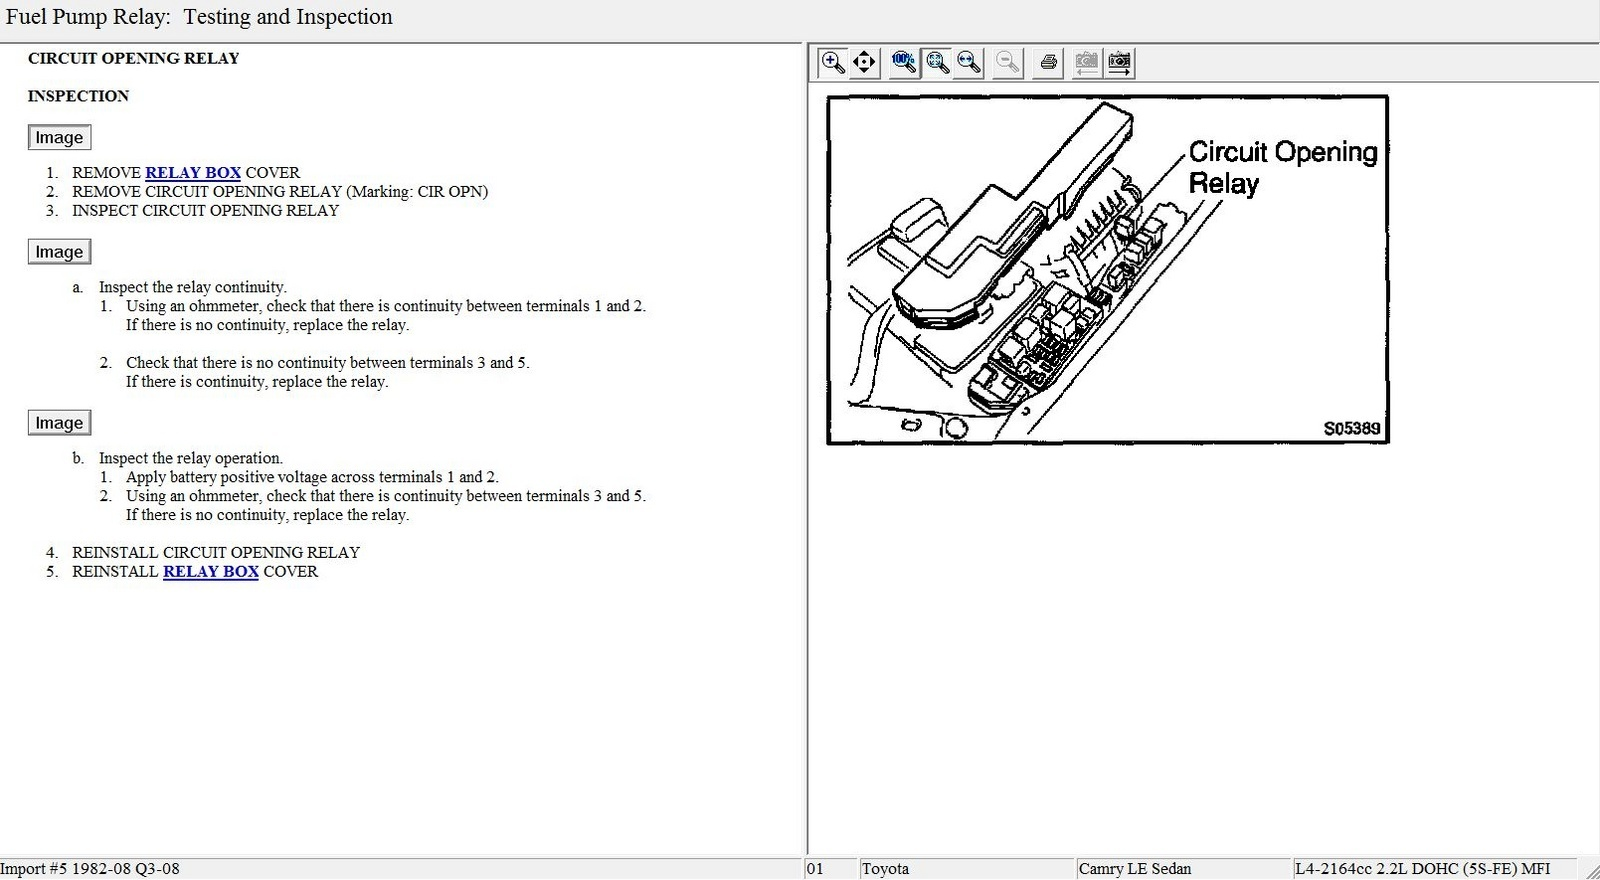 Toyota Corolla Fuel Pump Wiring Diagram